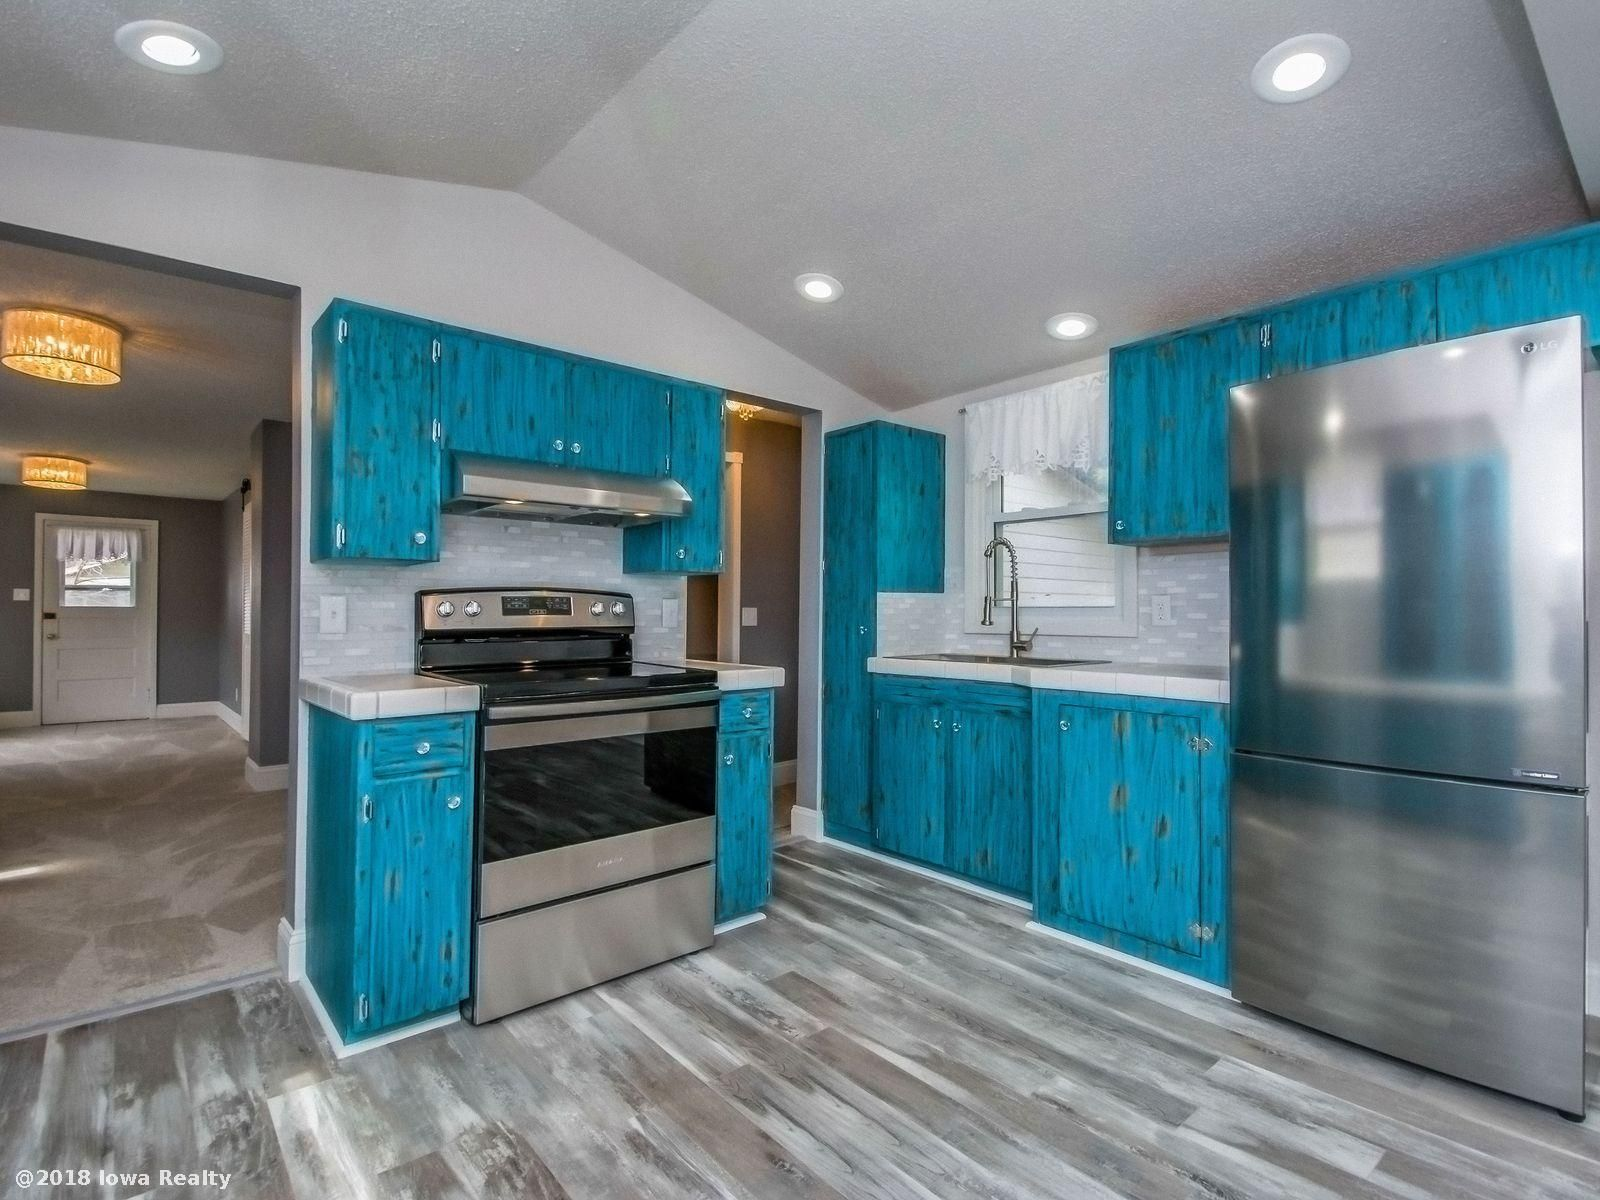 313 N 2nd St, Knoxville, IA 50138 | Trulia